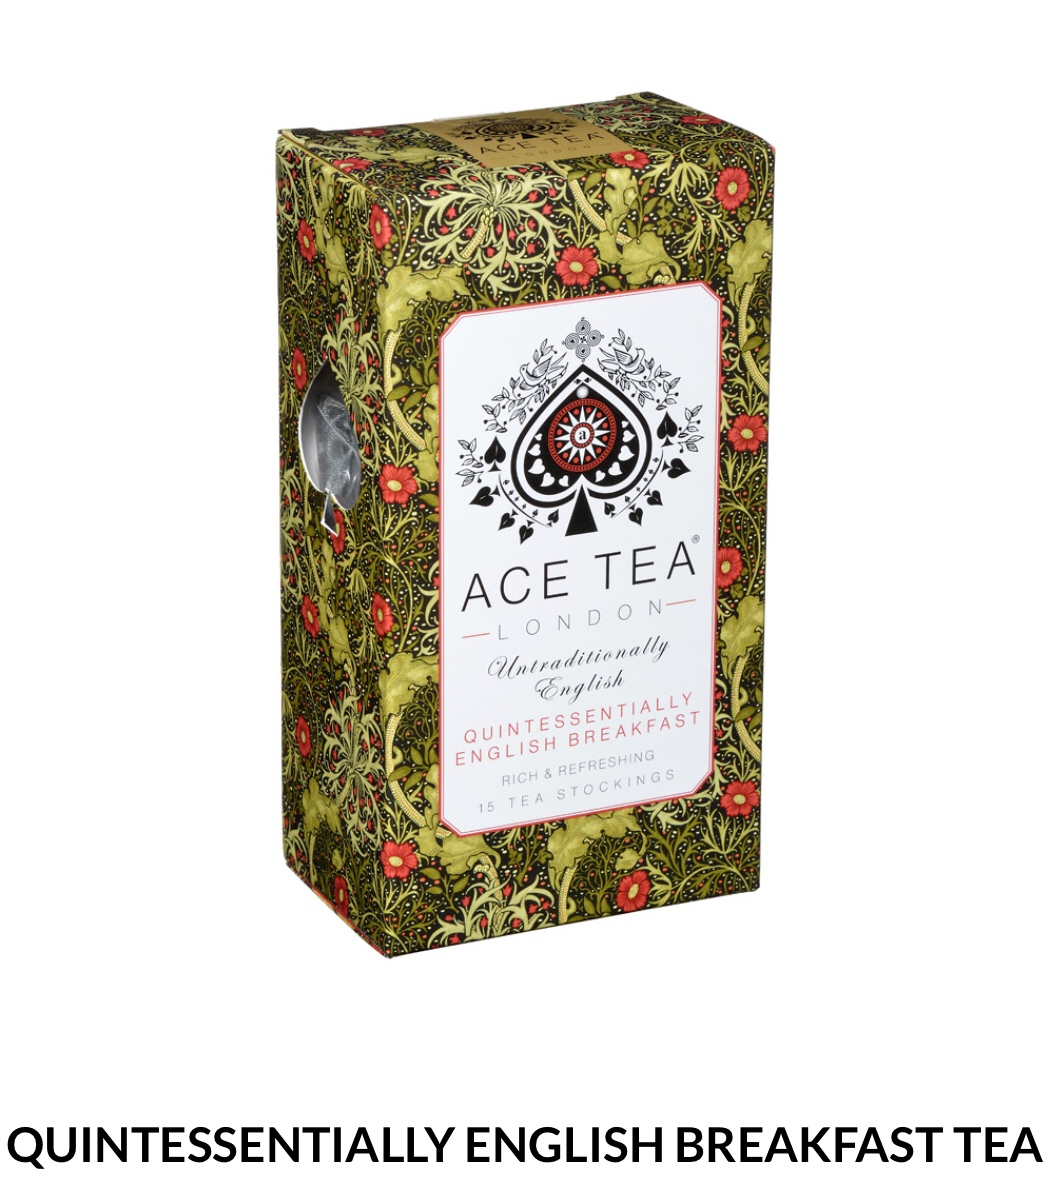 A rich, peppery and robust flavour that leaves a satisfying richness on the palate. Powerfully refreshing.  15 Tea Stockings- 52.5g  $8